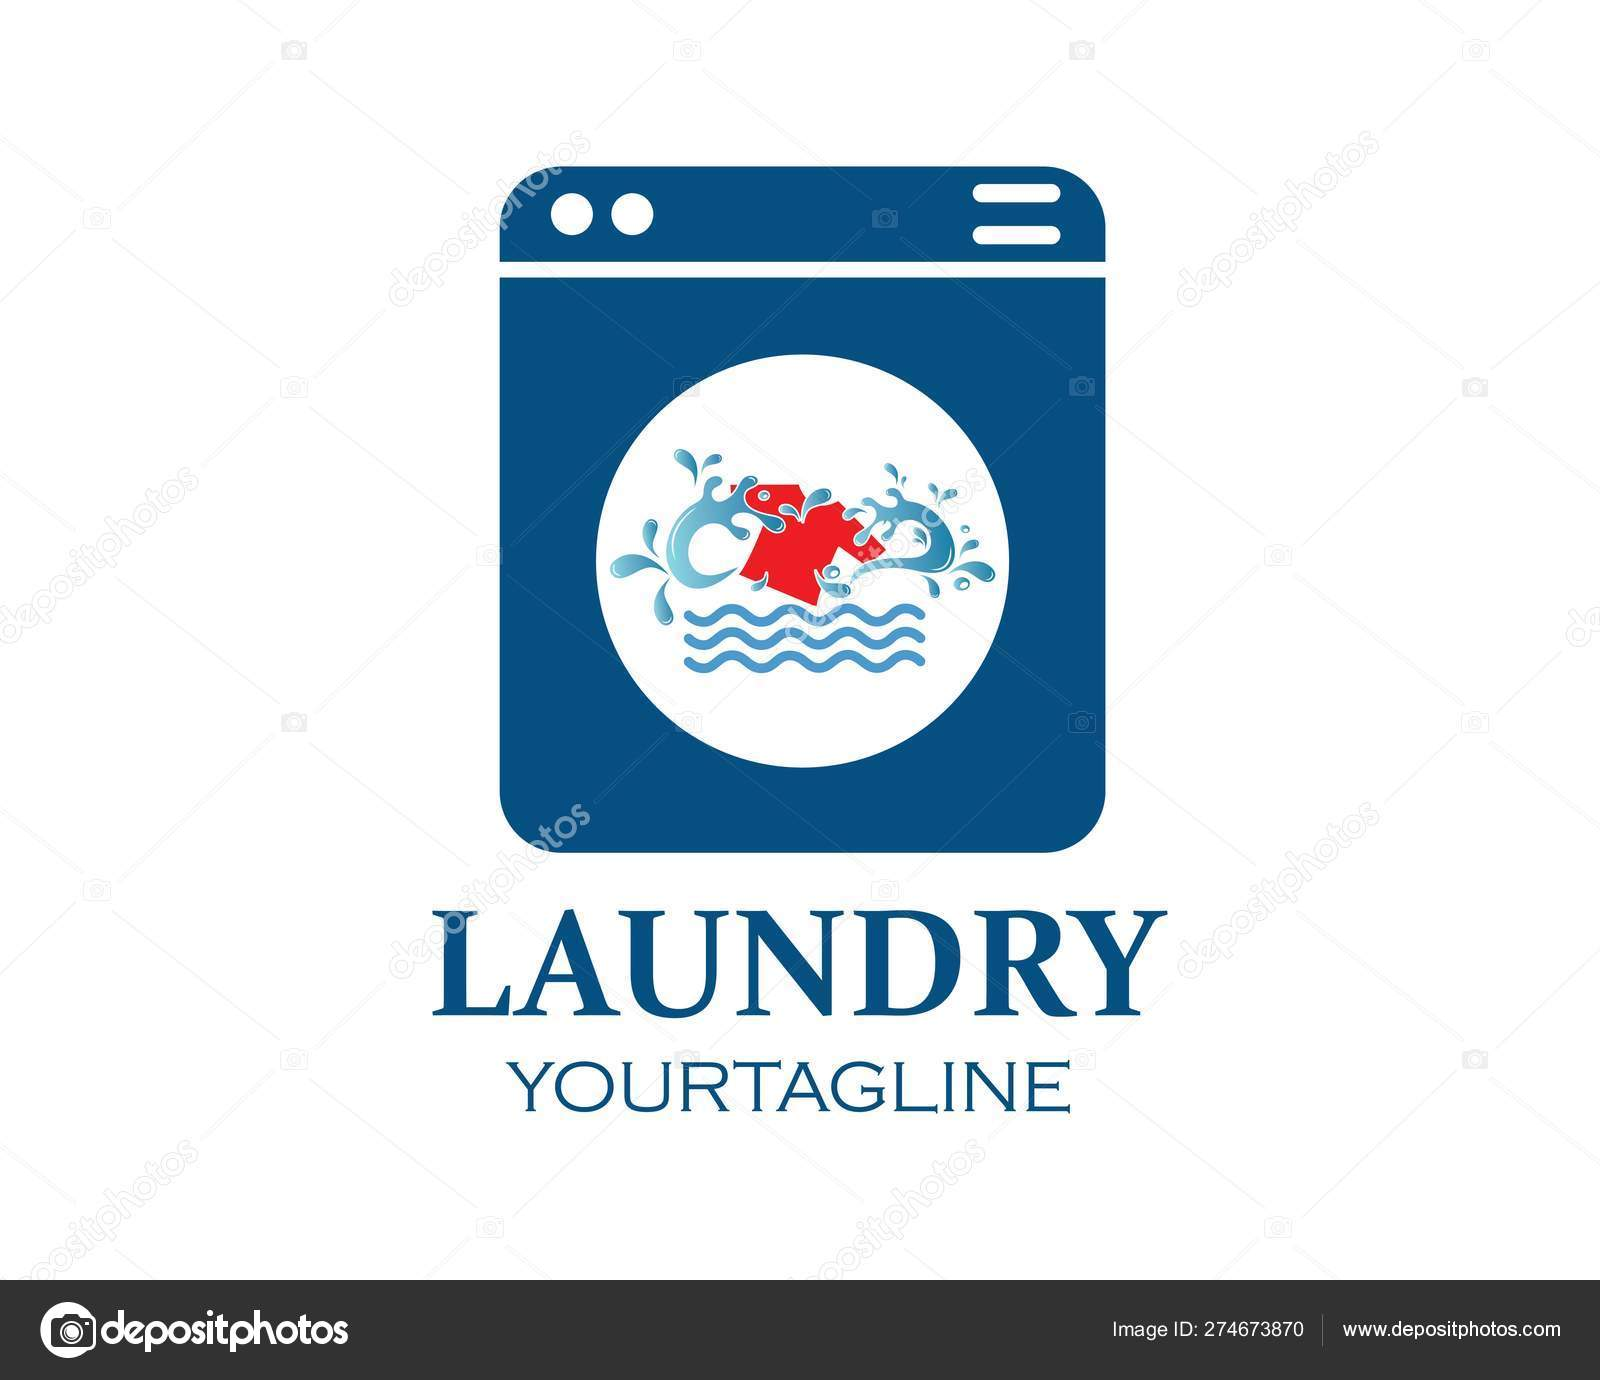 washing clothes logo icon vector of laundry service design stock vector c sangidan 274673870 https depositphotos com 274673870 stock illustration washing clothes logo icon vector html